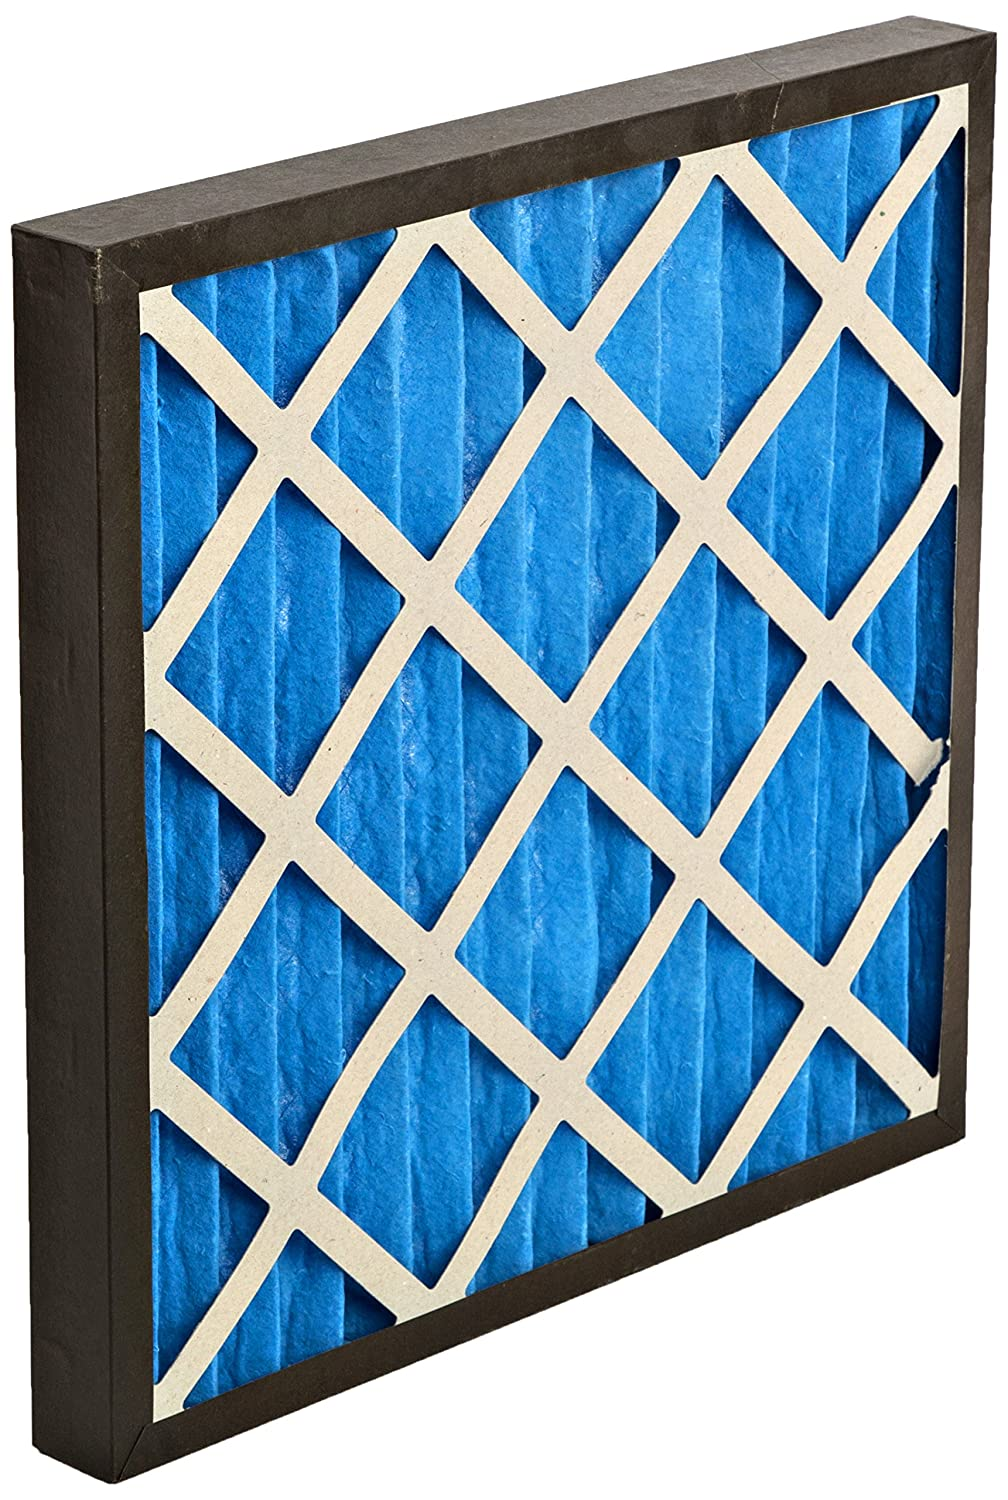 GVS Filter Technology G4P.20.20.2.SUA001.010 G4 Pleated Panel Filter, Blue/White (Pack of 10)